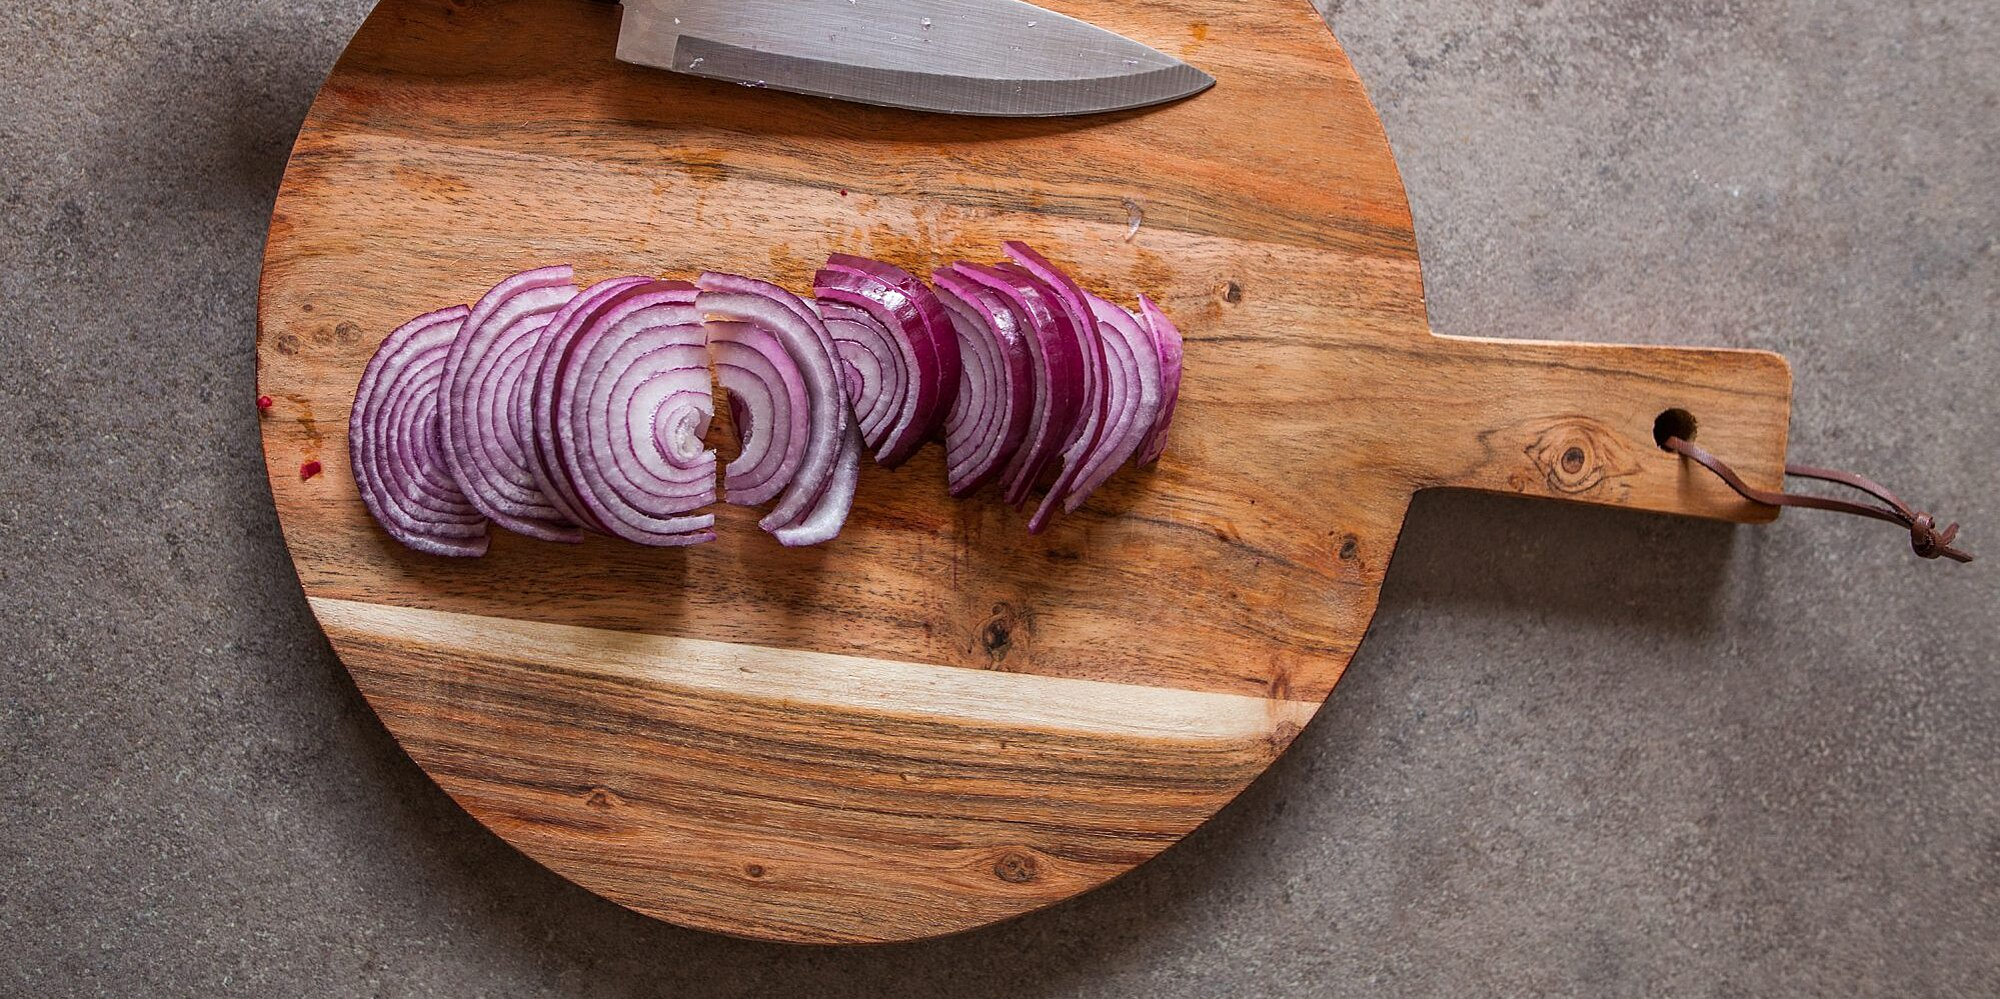 5 kitchen knife mistakes you might be making